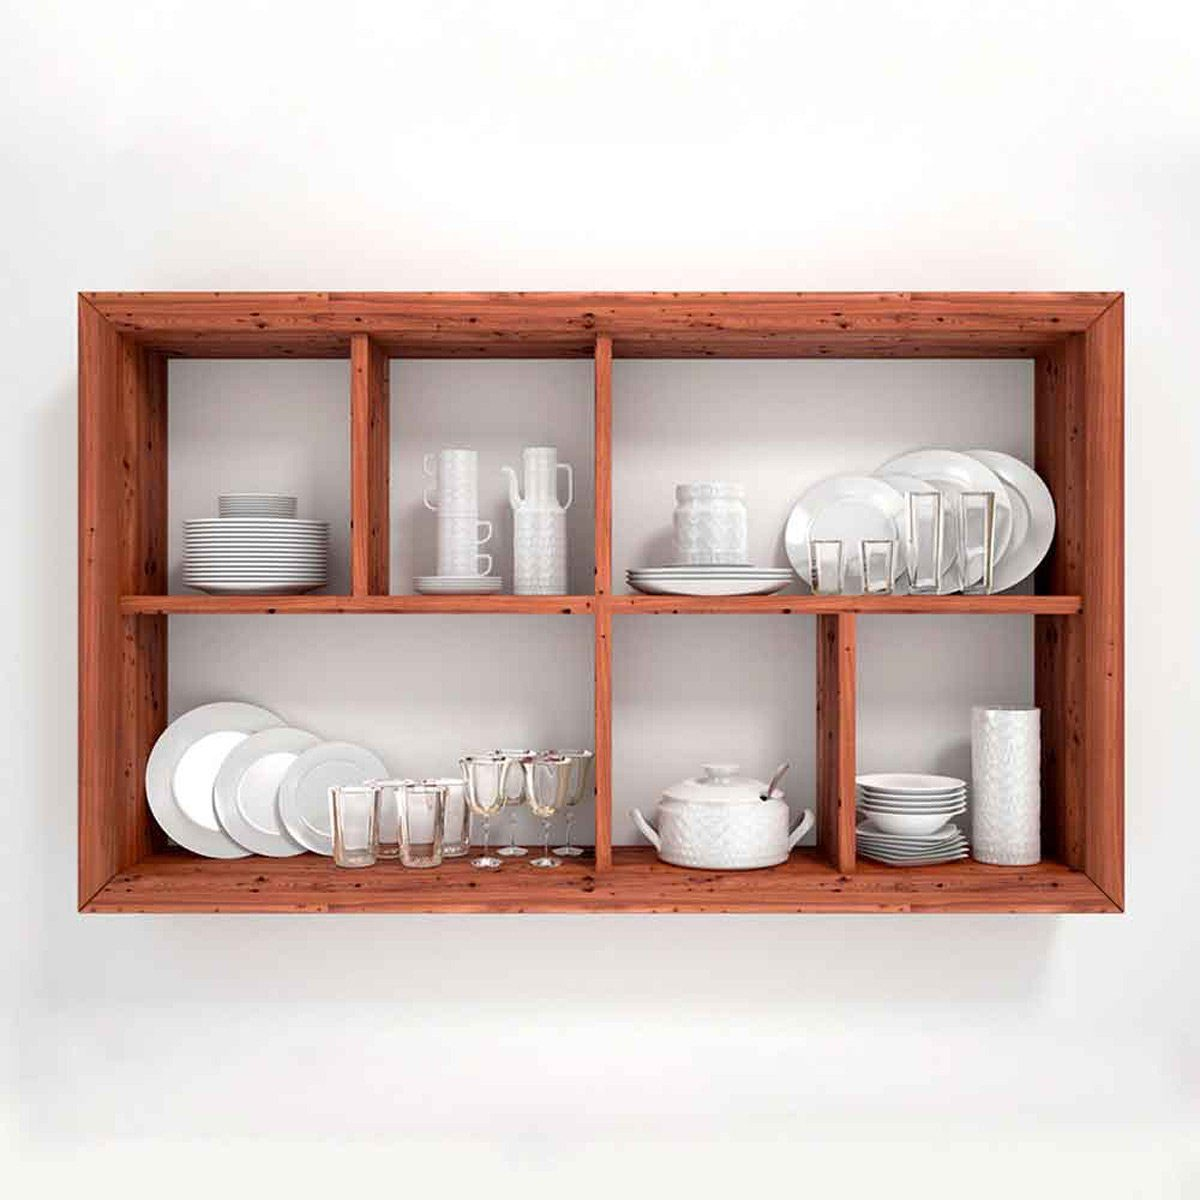 organized shelving unit